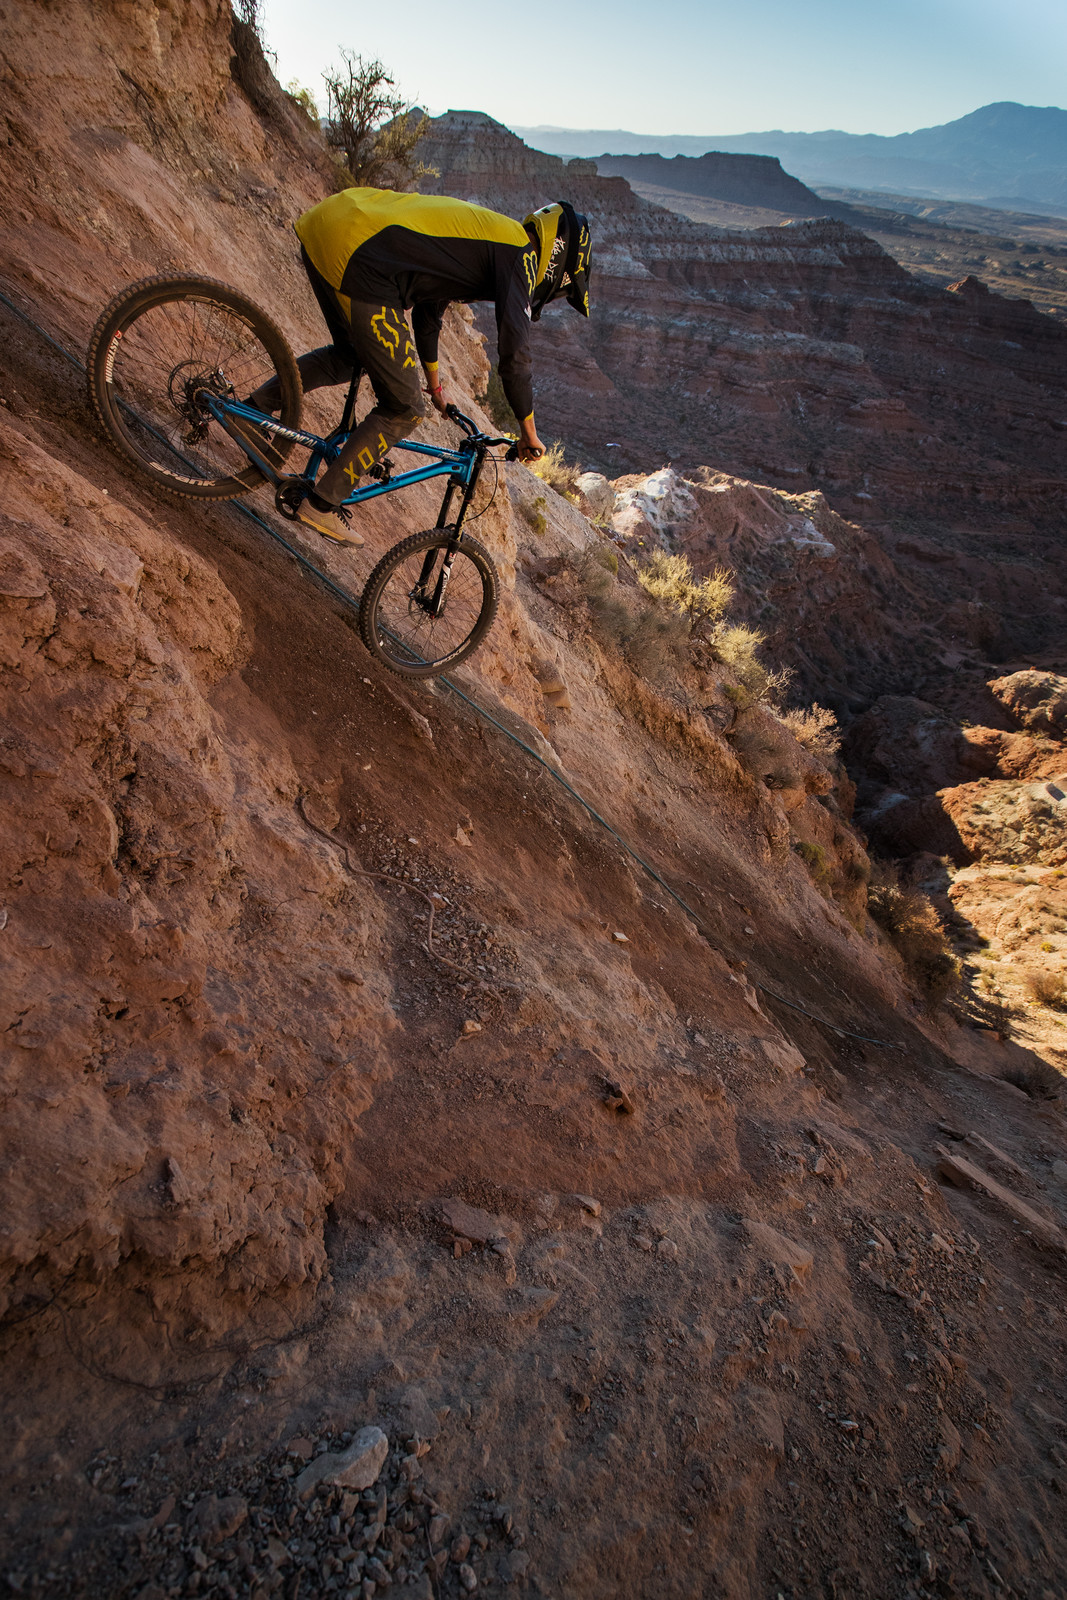 Dropping In! - Red Bull Rampage 2017 Practice Session - Mountain Biking Pictures - Vital MTB